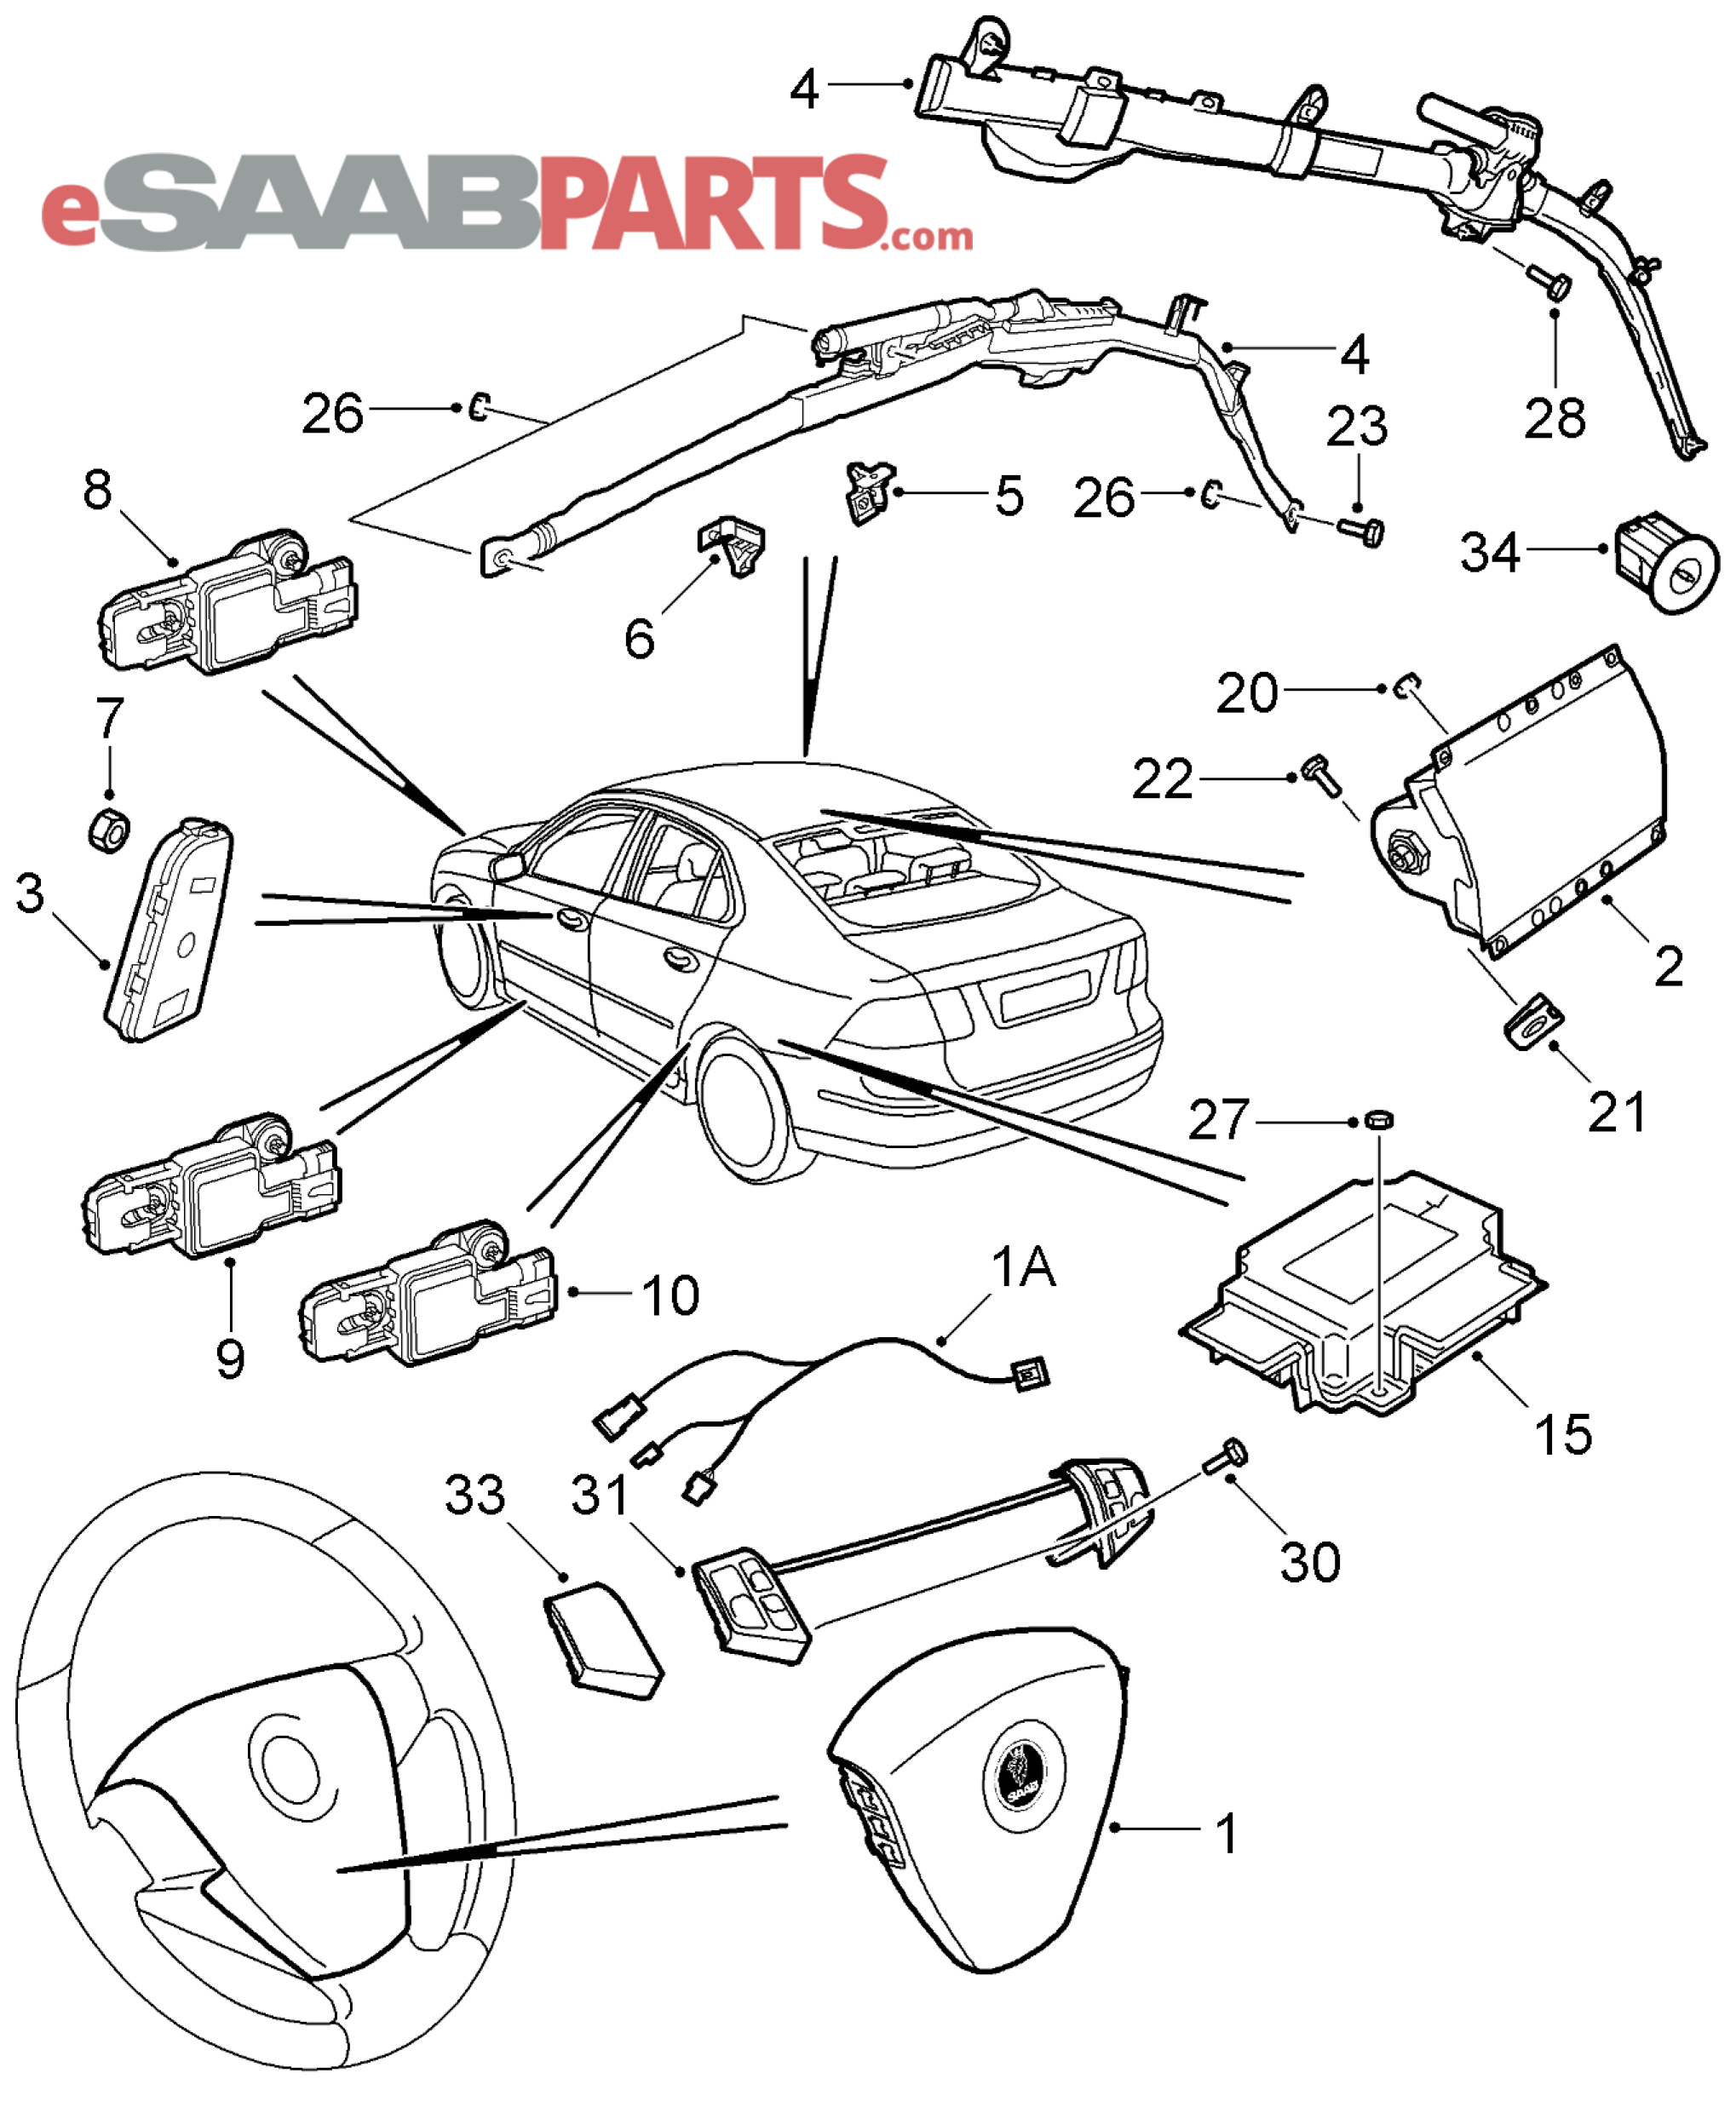 Wiring Diagram 1999 Saab 9 3 Speakers. Saab. Auto Wiring